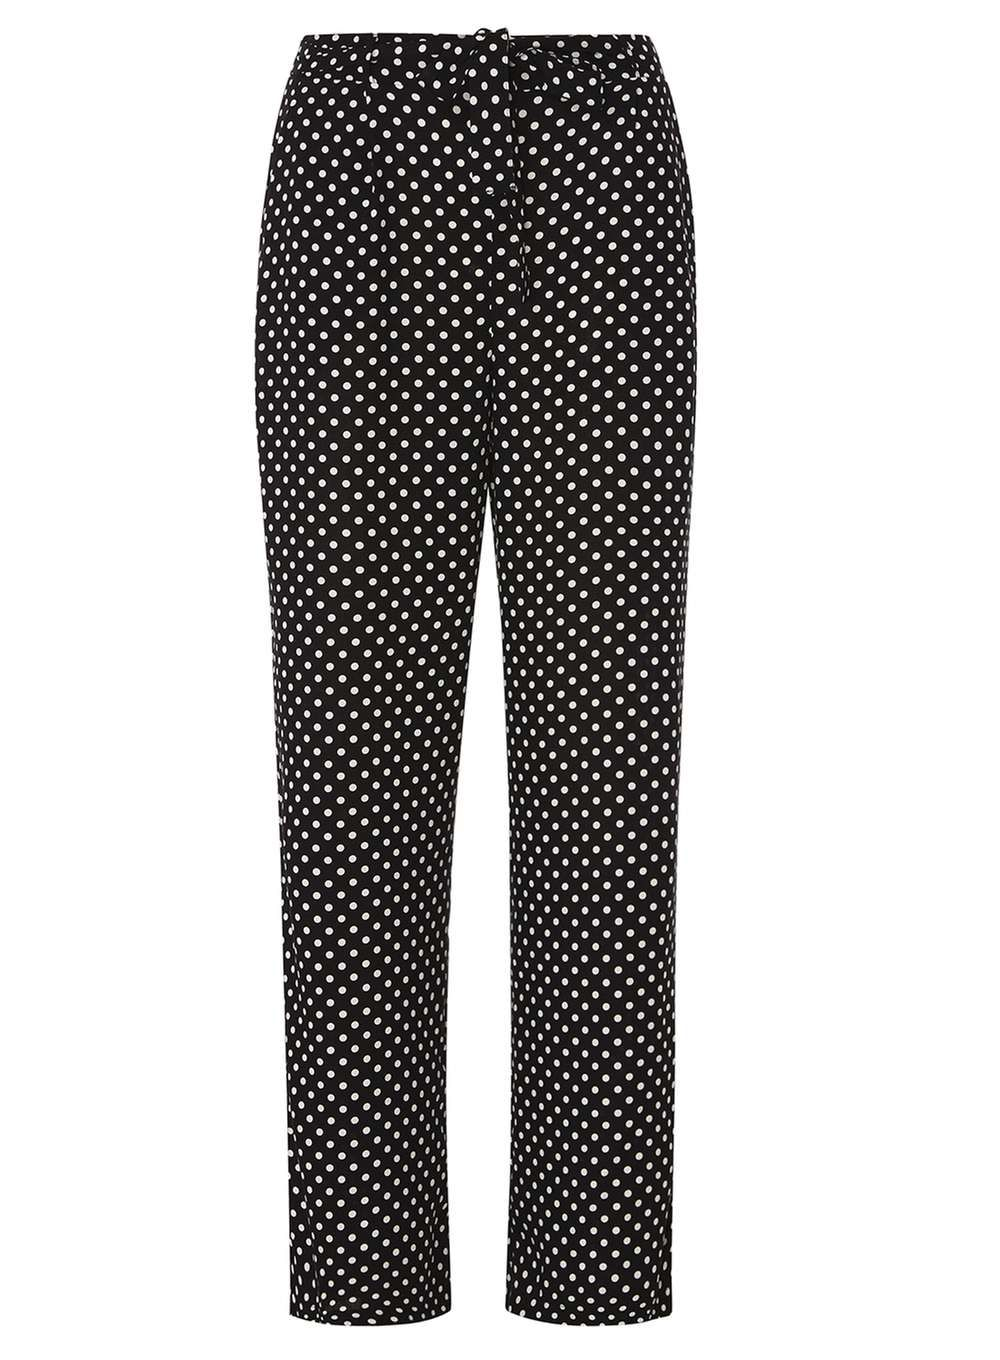 Black Spot Palazzo Tie Trousers  #summertrousers #polkatrousers